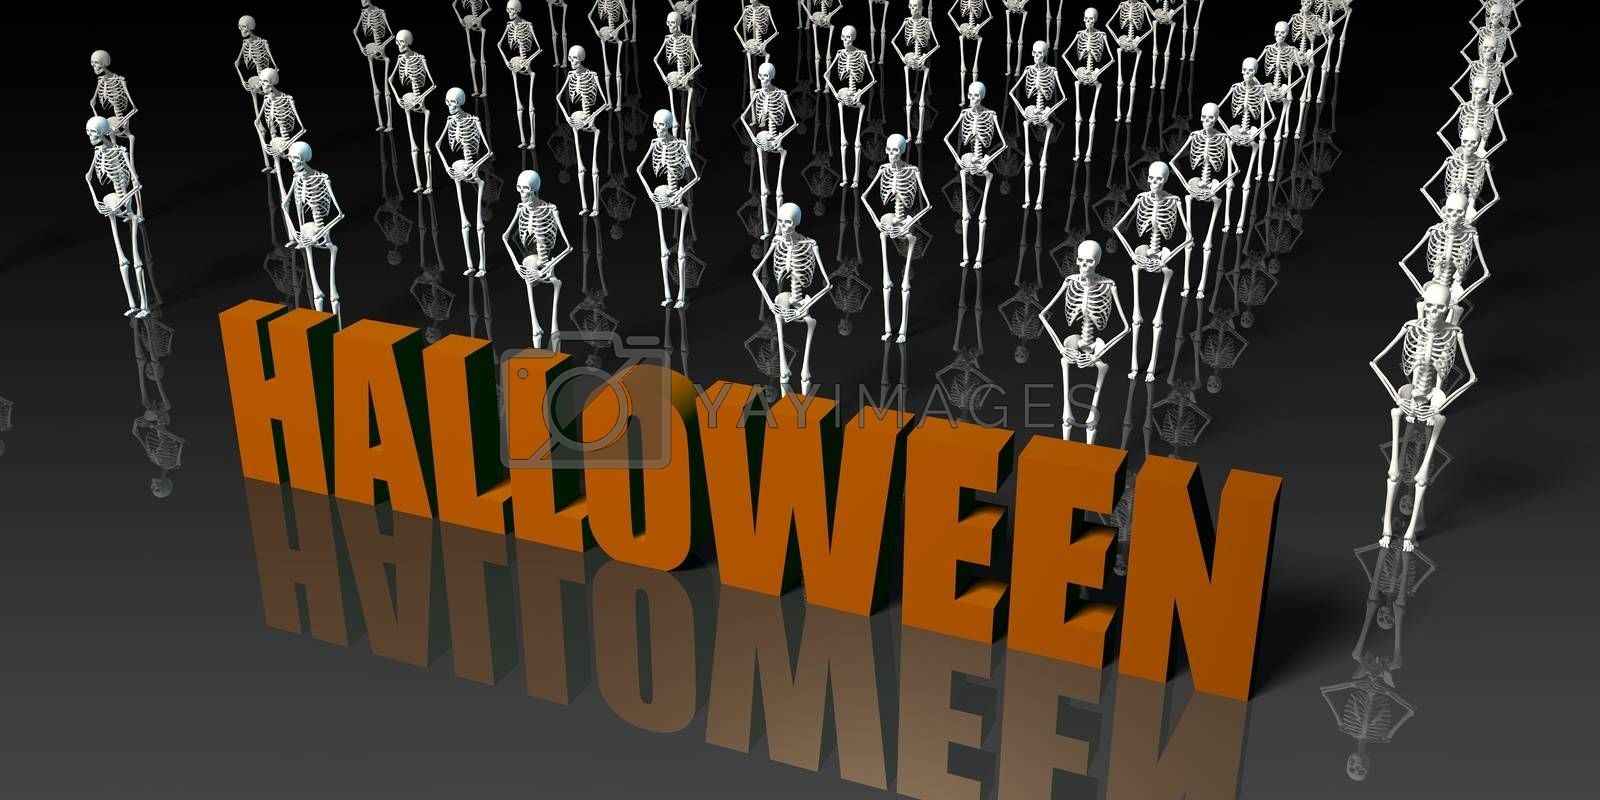 Halloween Celebration with Skeletons Dancing as a Holiday Abstract